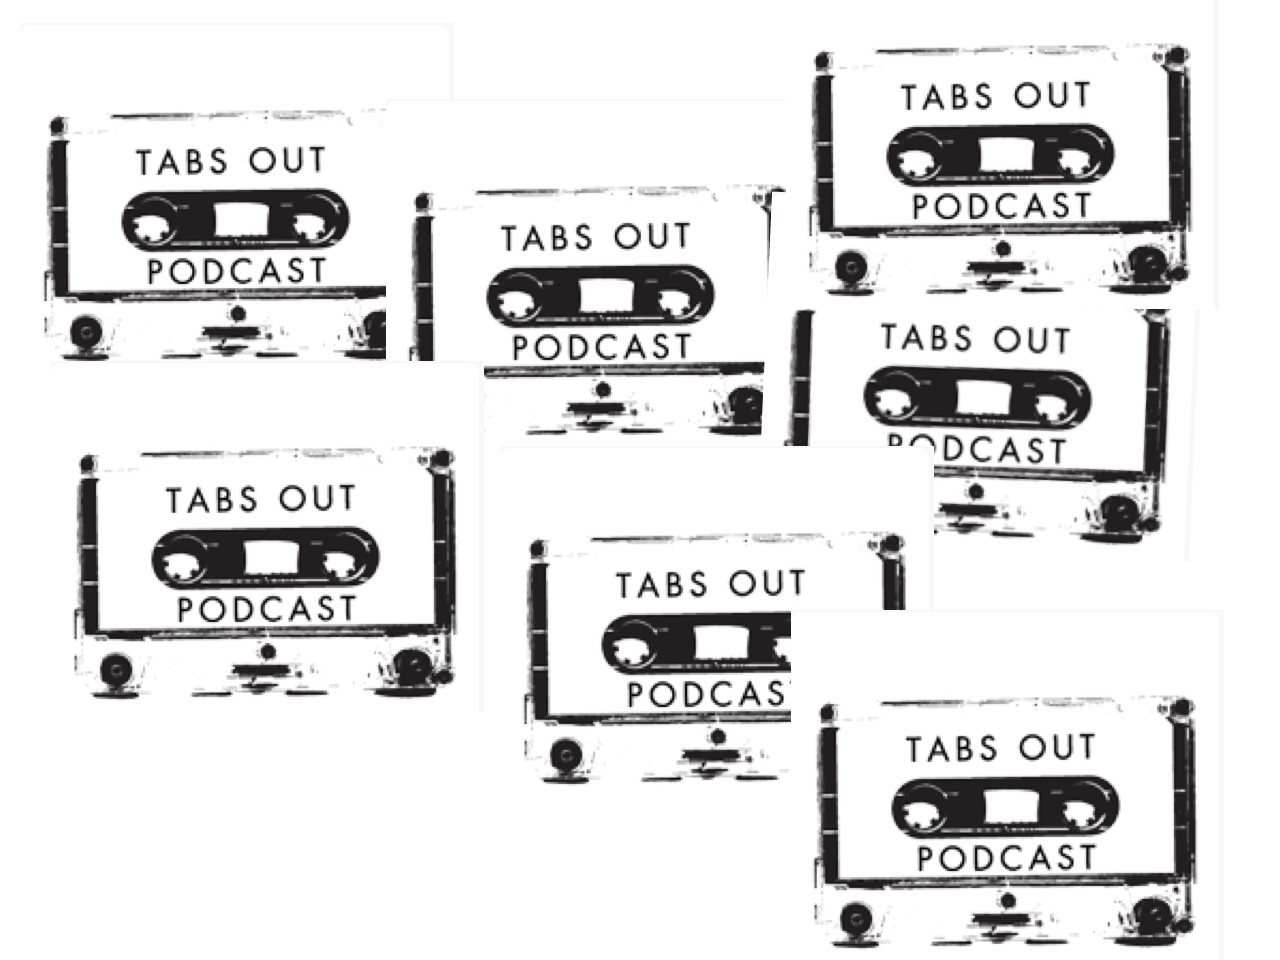 tabs out cassette culture podcast